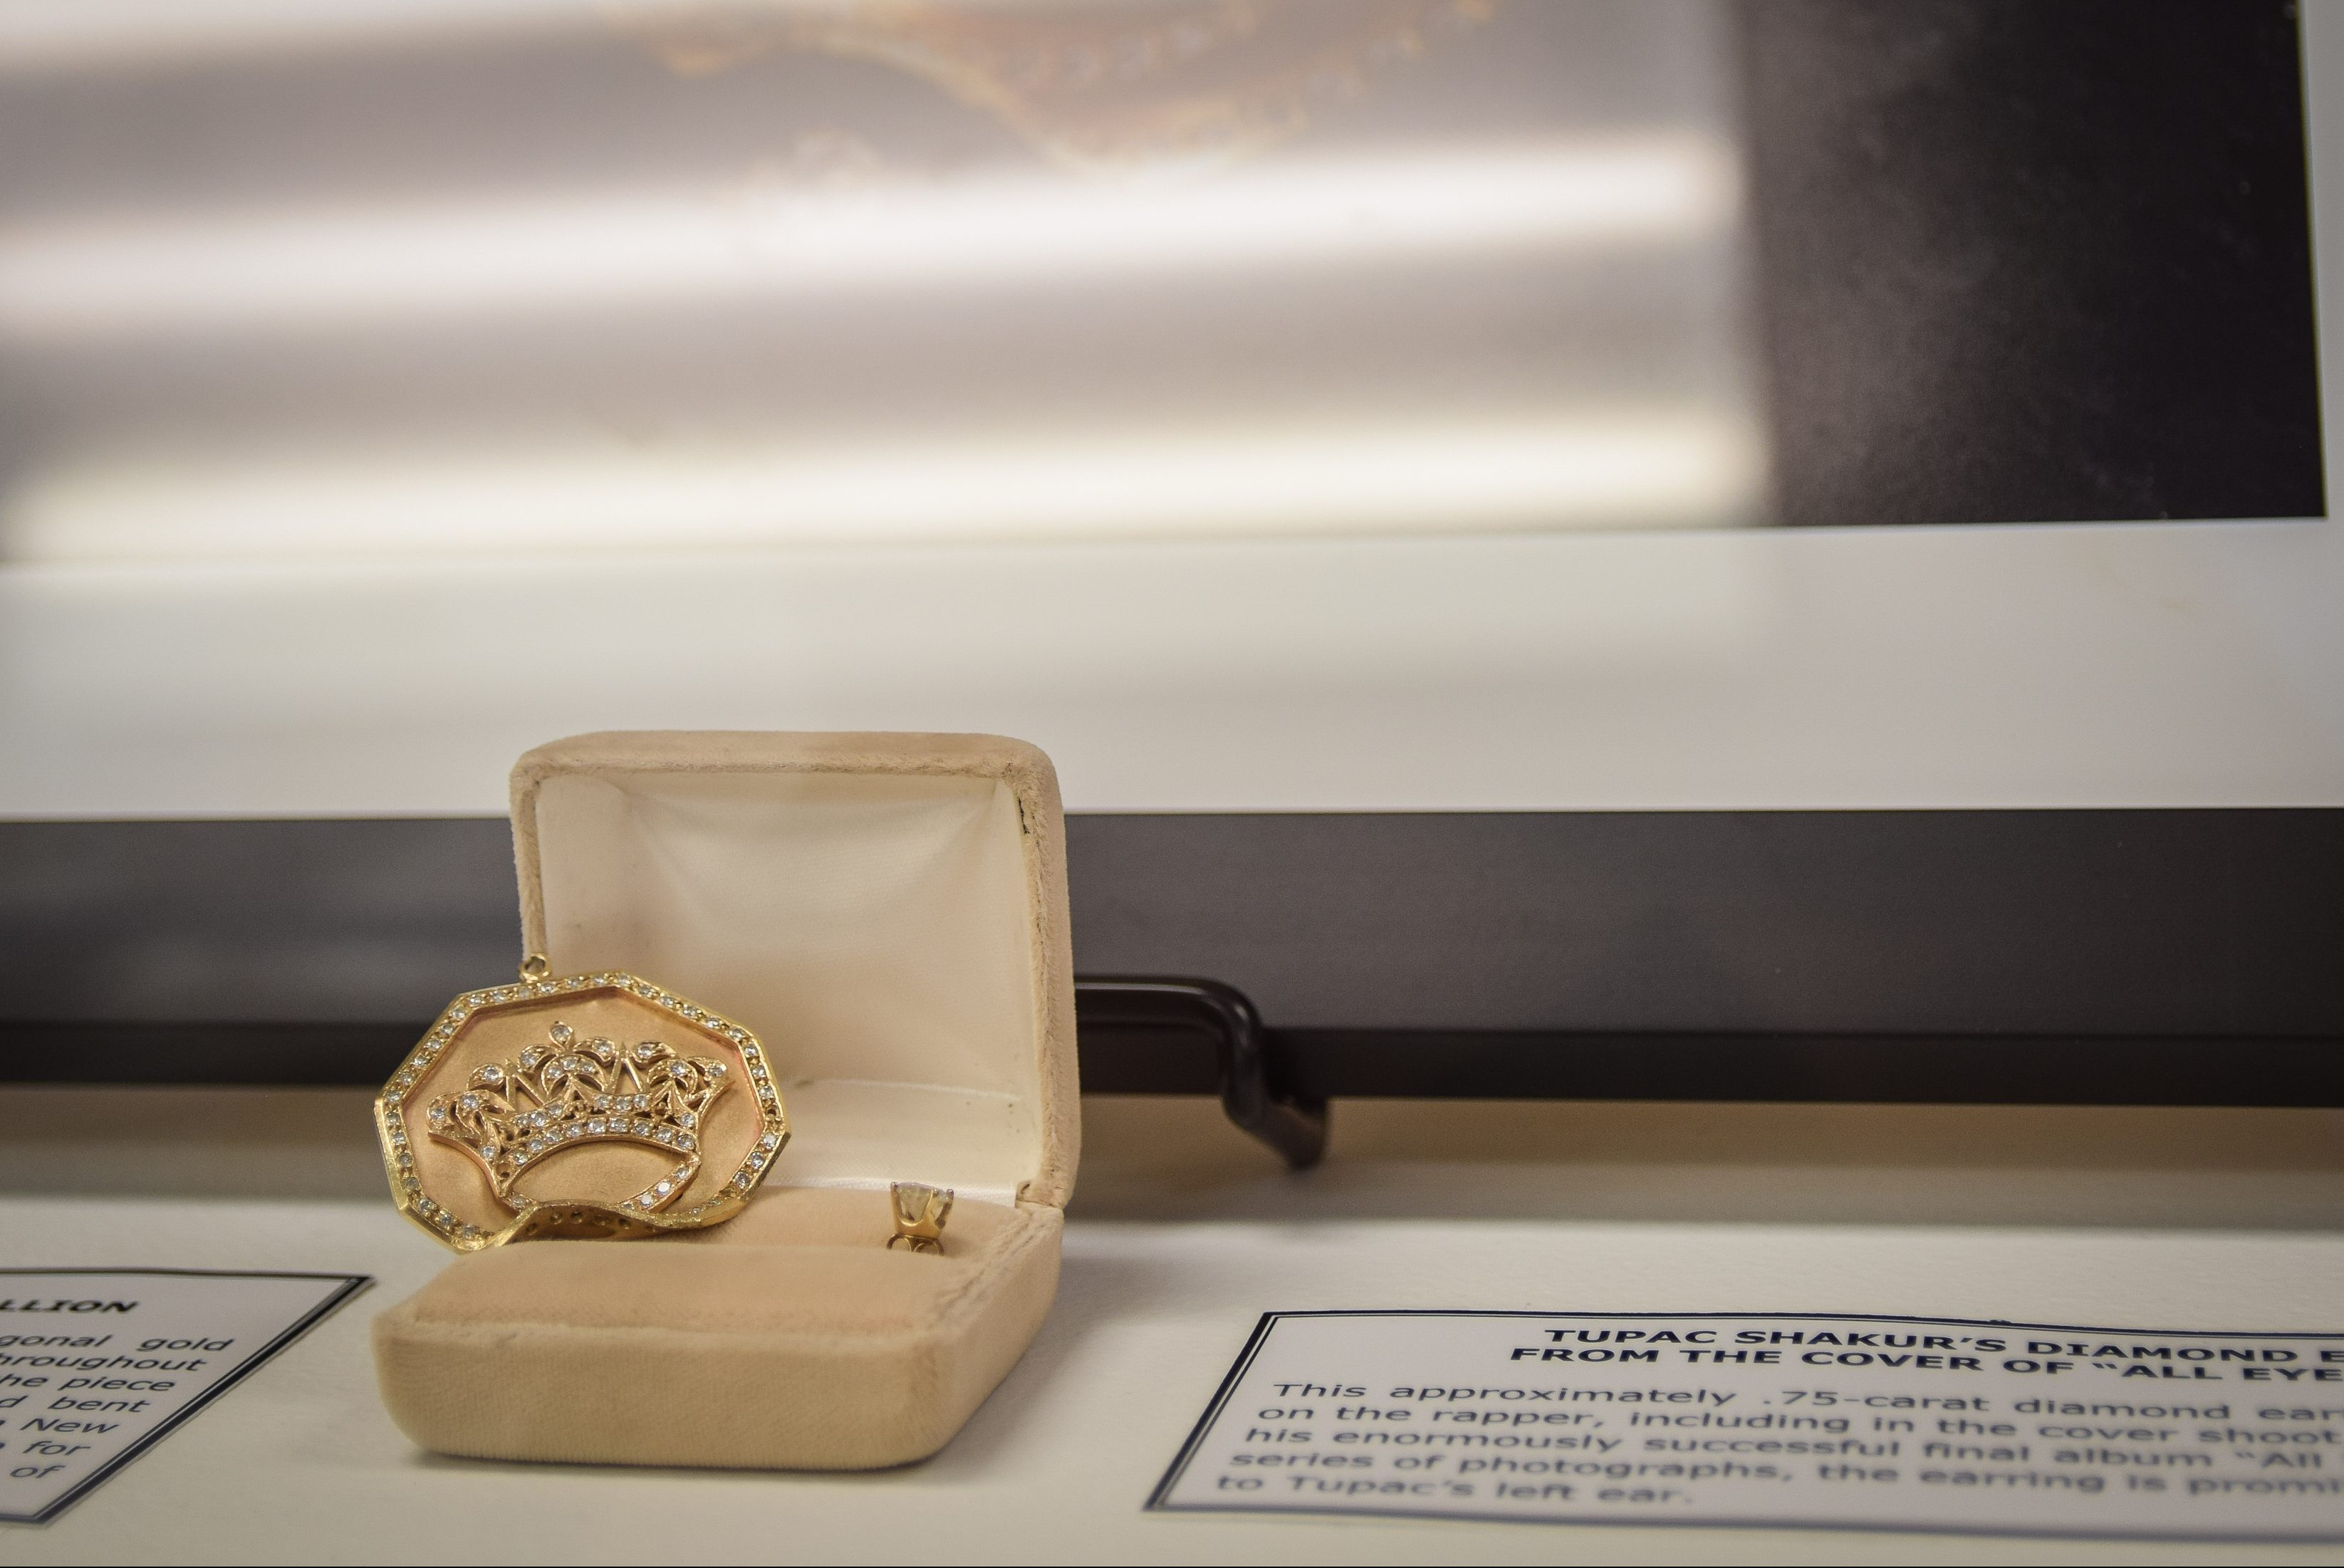 On November 1, 2018 the Blockson Collection at Temple University presented a number of items donated to the collection that belonged to rapper Tupac Shakur. Items include handwritten lyrics, a bullet-dented medallion Shakur wore during a 1994 shooting.